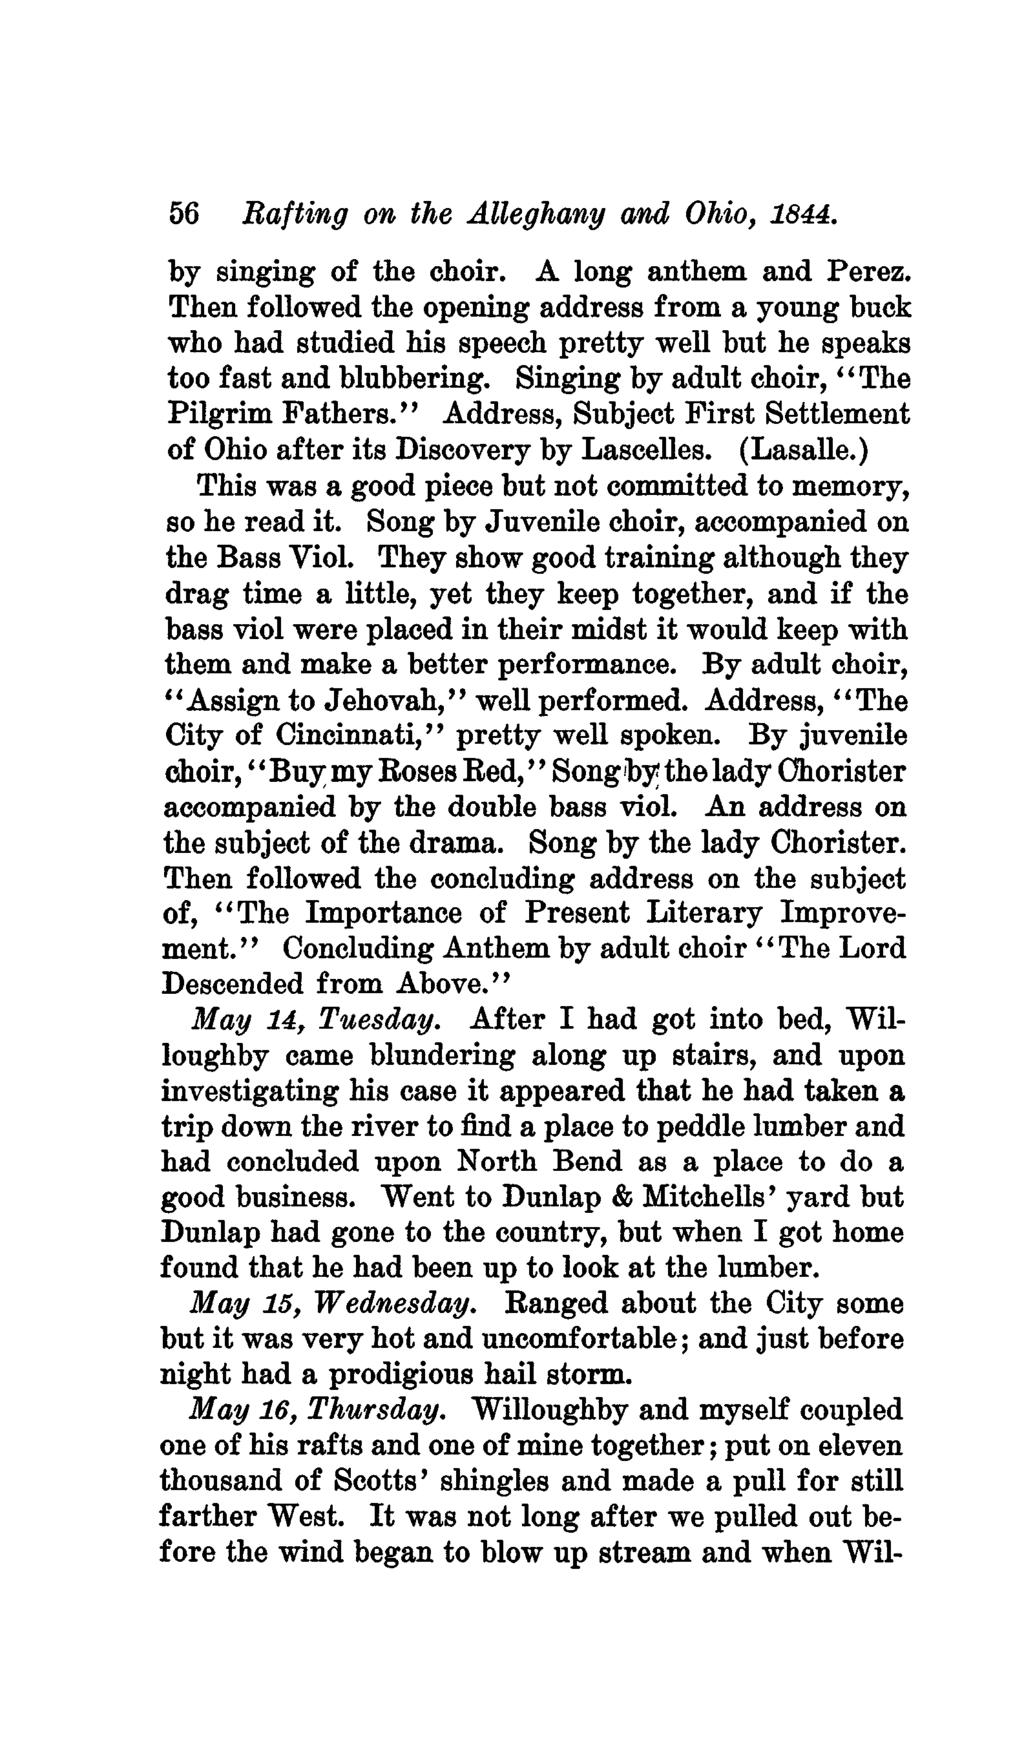 56 Rafting on the Alleghany and Ohio, 1844. by singing of the choir, A long anthem and Perez.